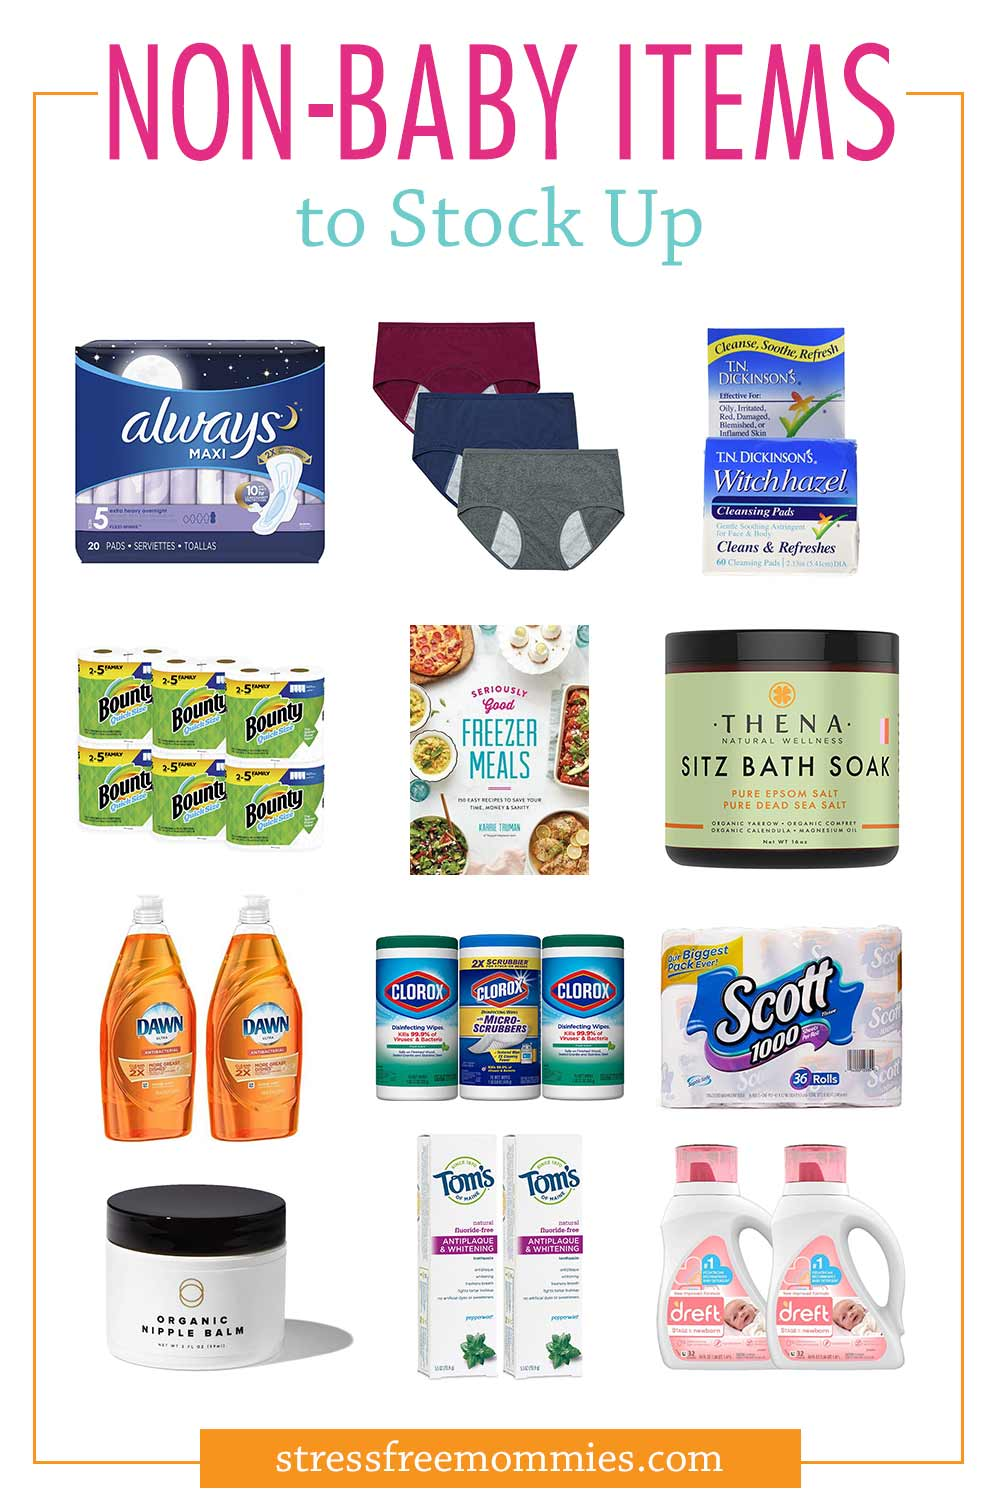 The 20 non-baby items you forgot to stock up on before baby arrives